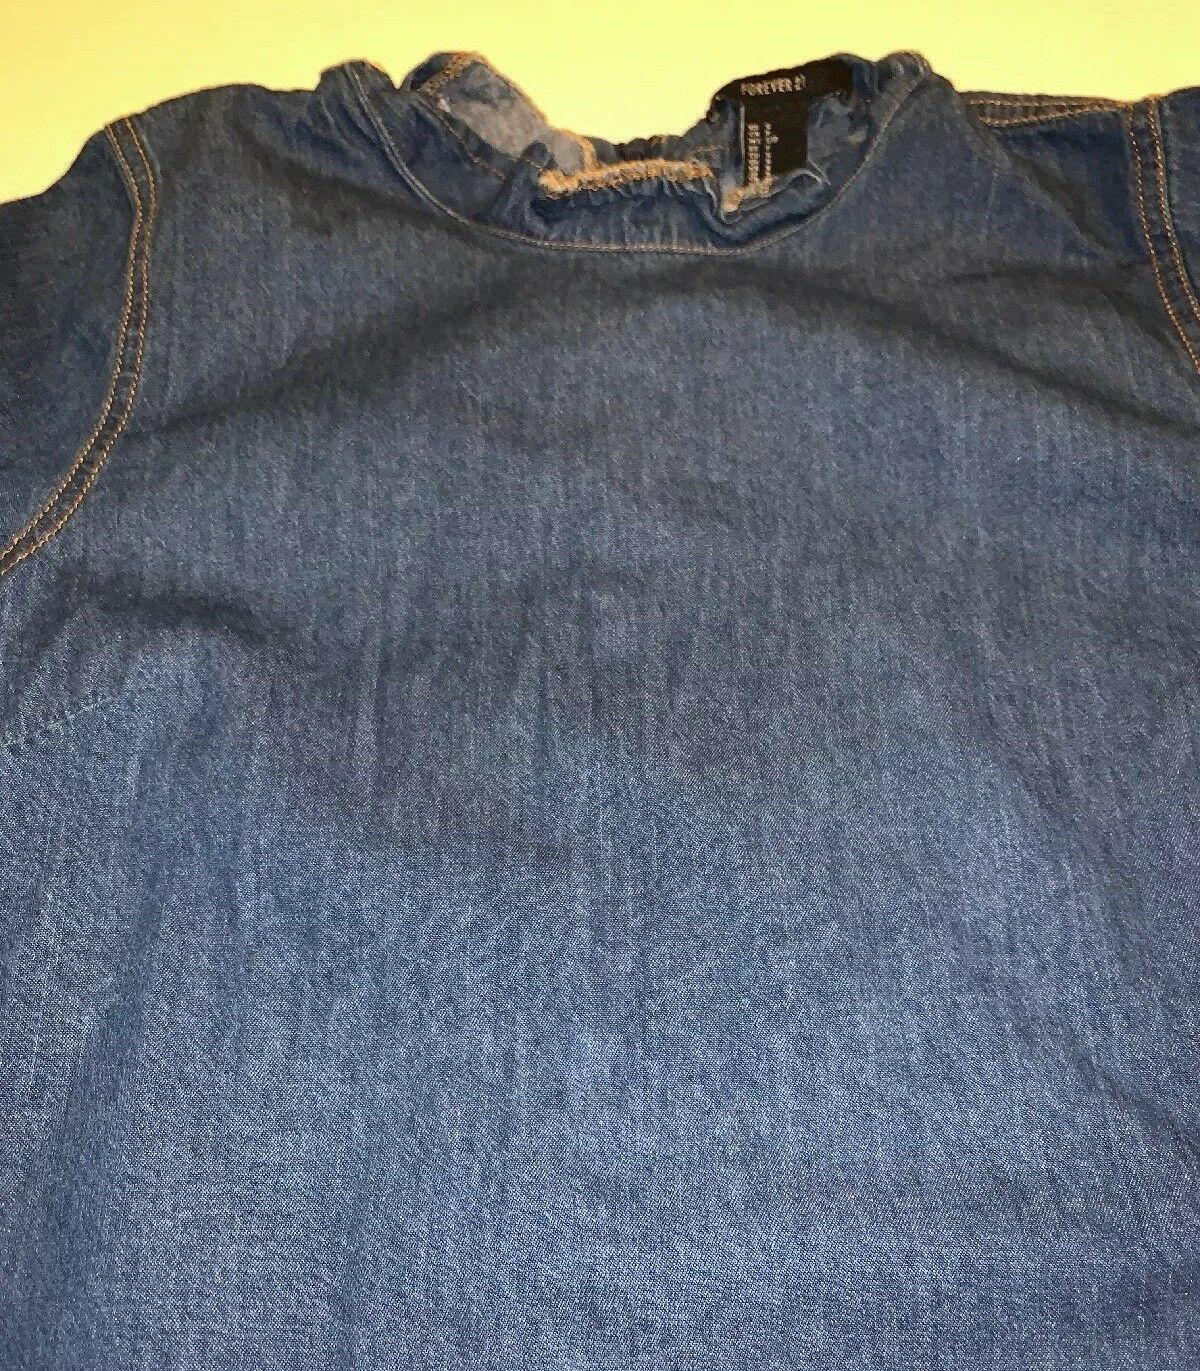 Preowned- Forever21 Dark Wash Chambray Denim Dres… - image 2